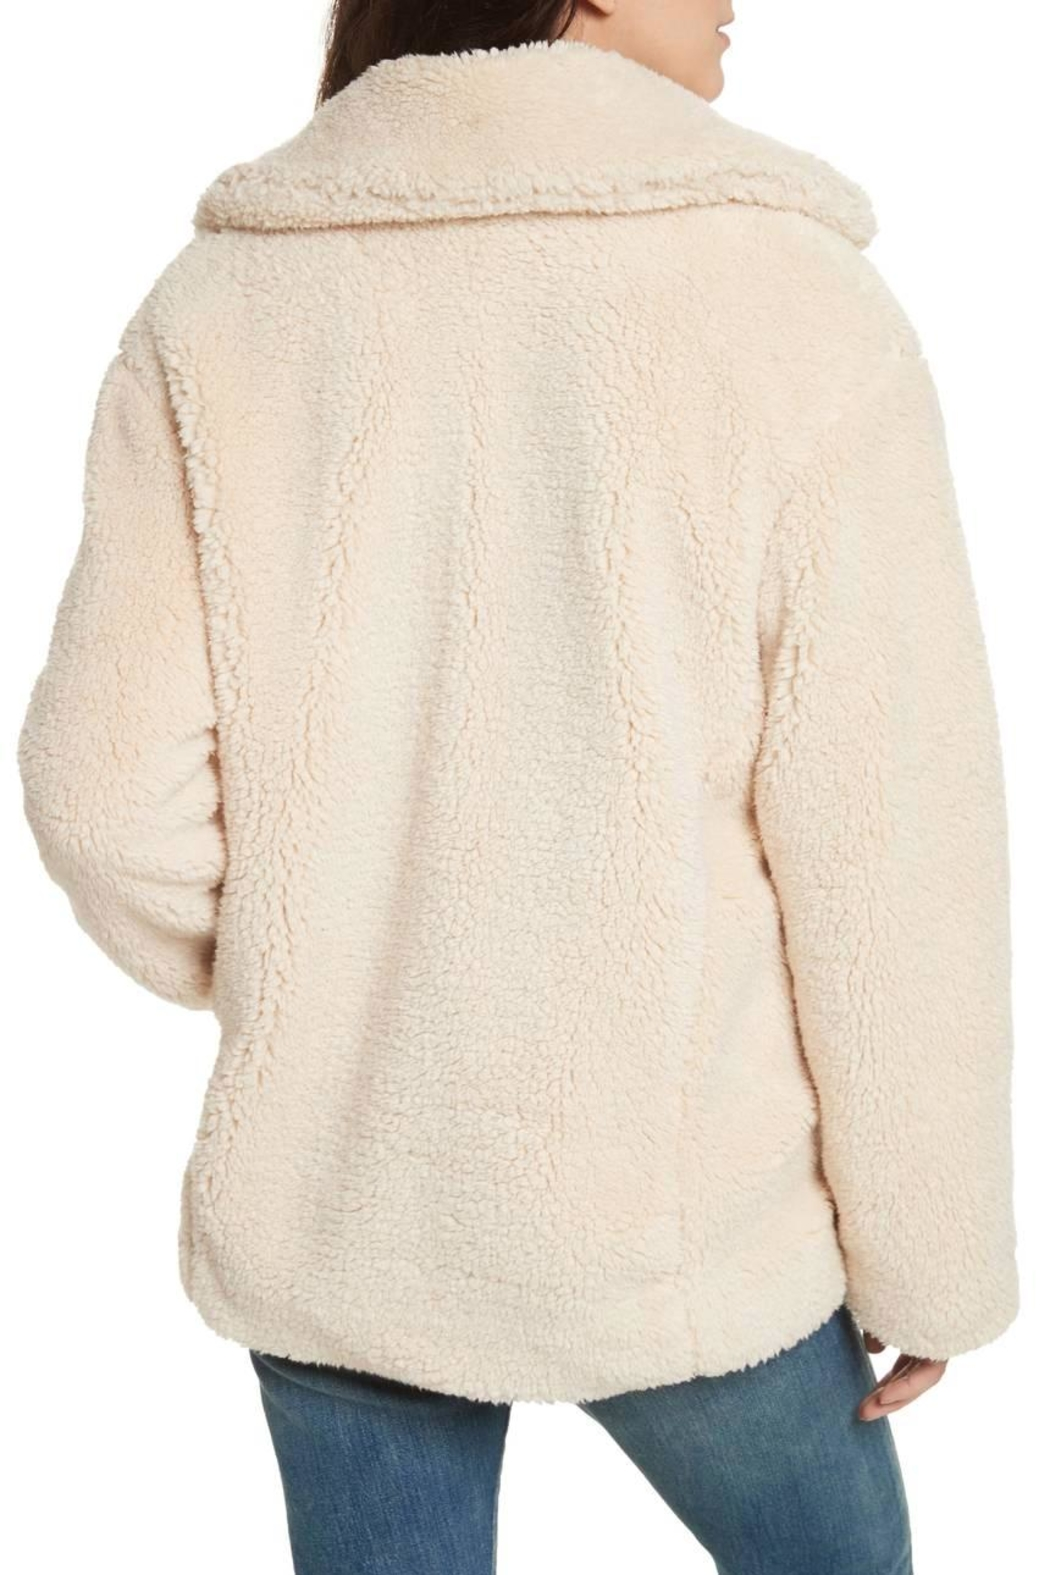 Free People Teddy Peacoat - Side Cropped Image